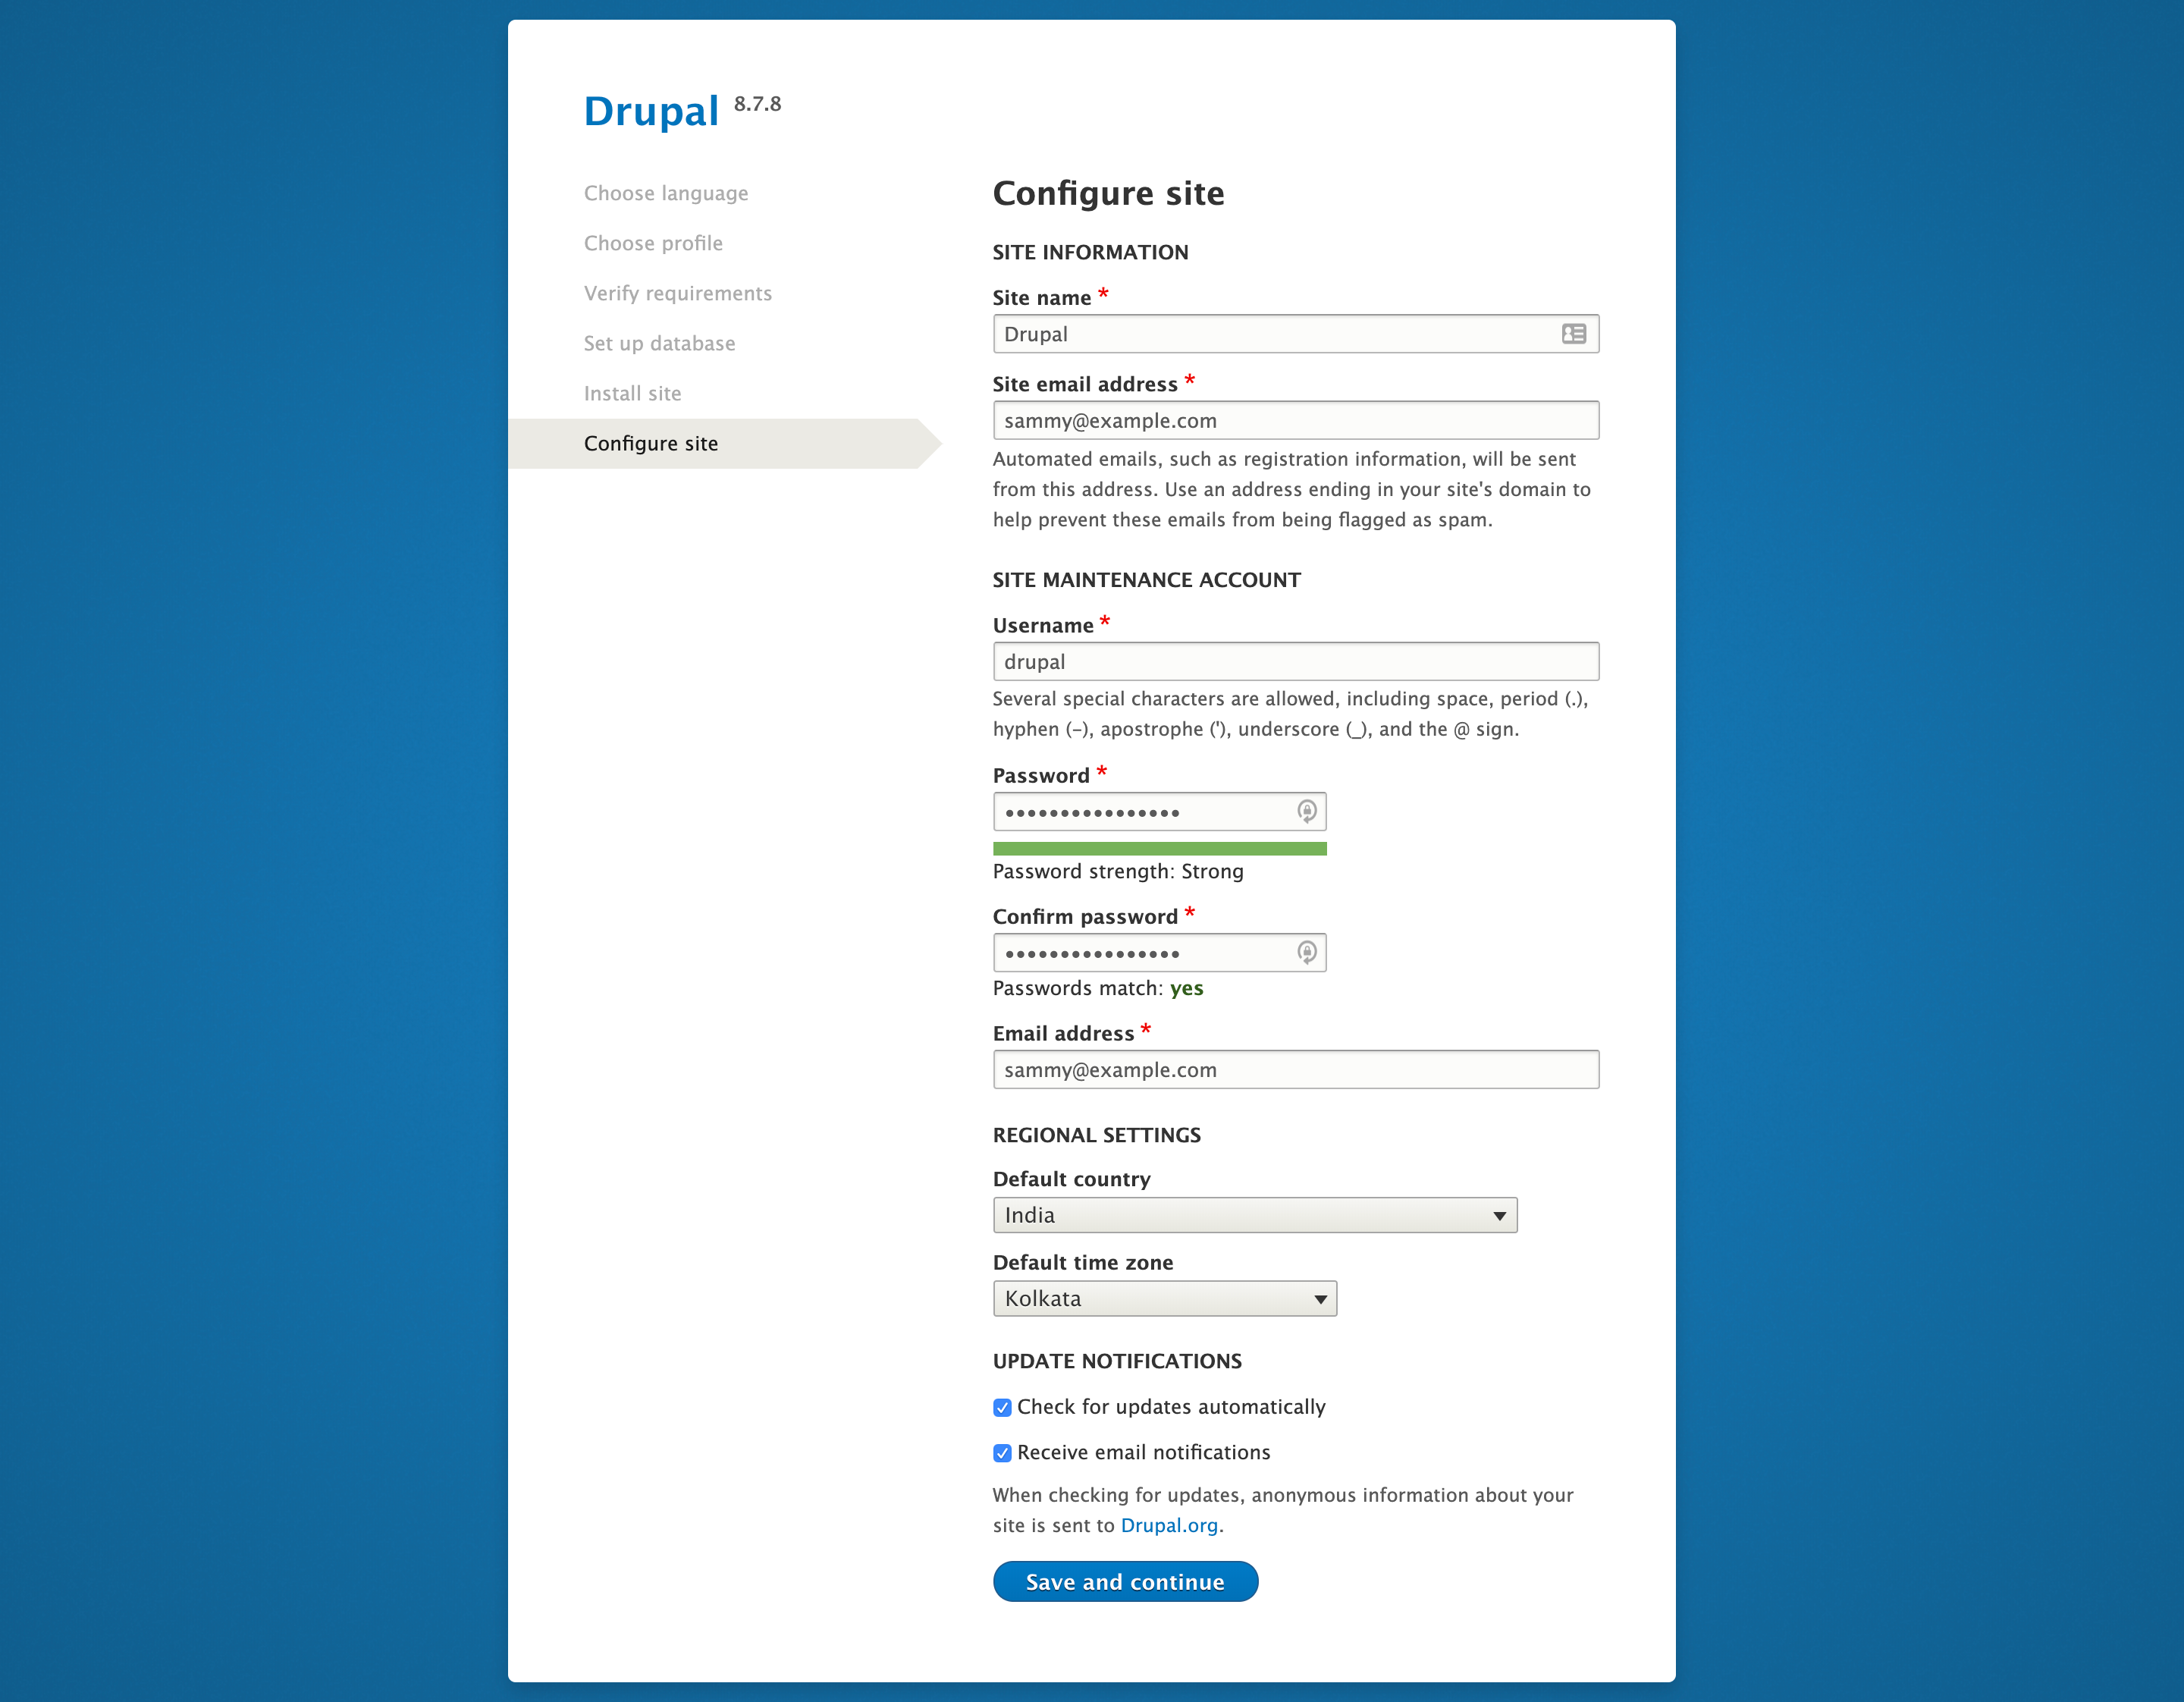 Configure site page on Drupal web interface